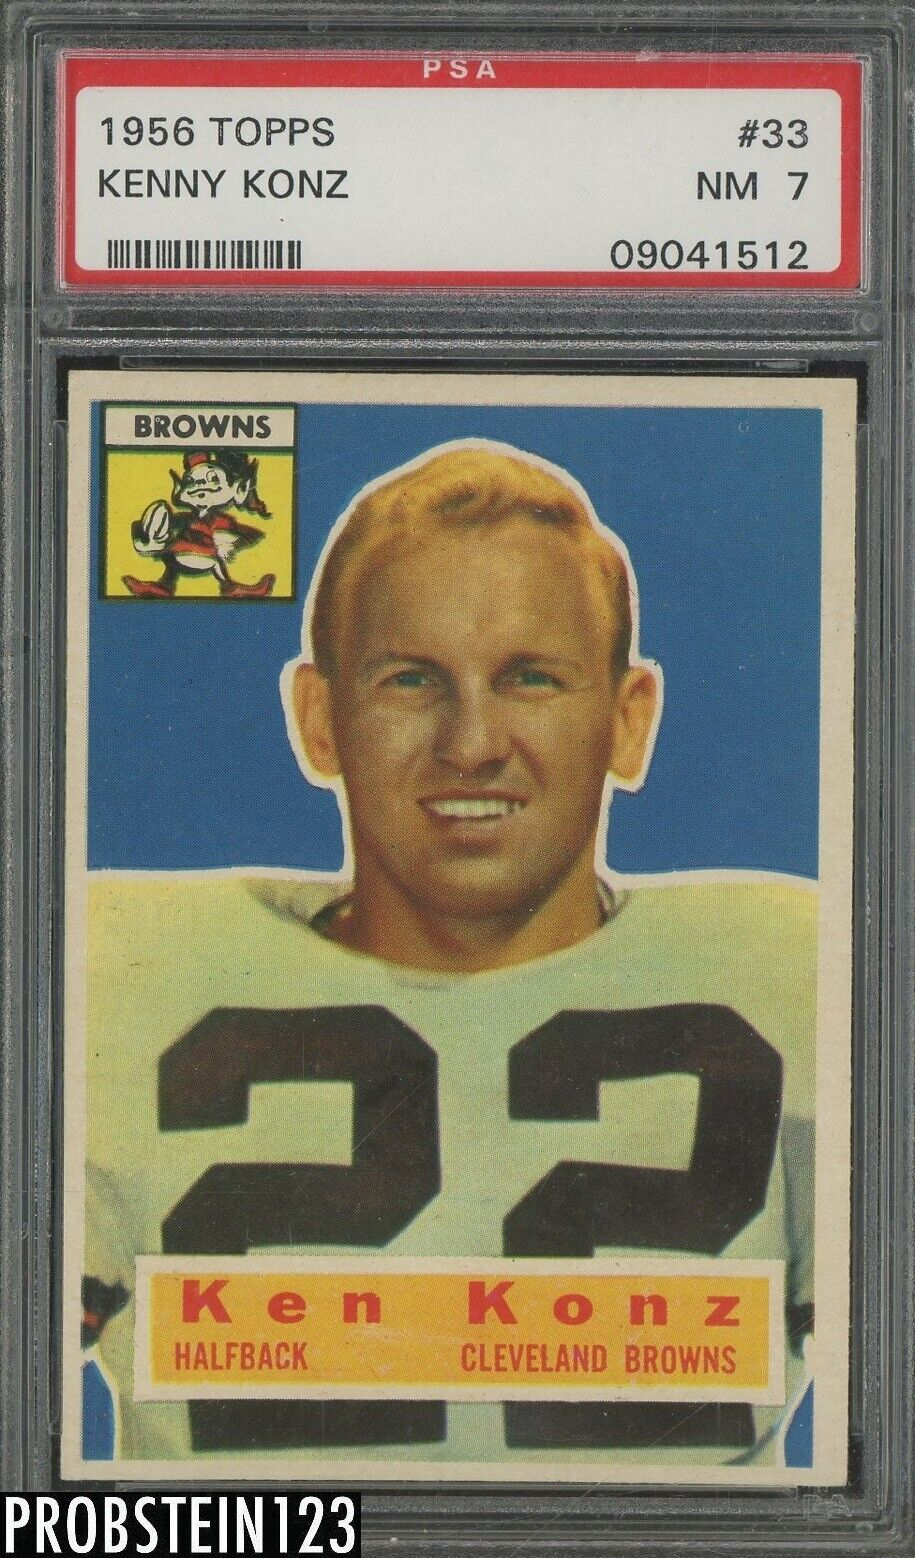 1956 Topps Football 33 Kenny Konz Cleveland Browns PSA 7 NM - $14.82